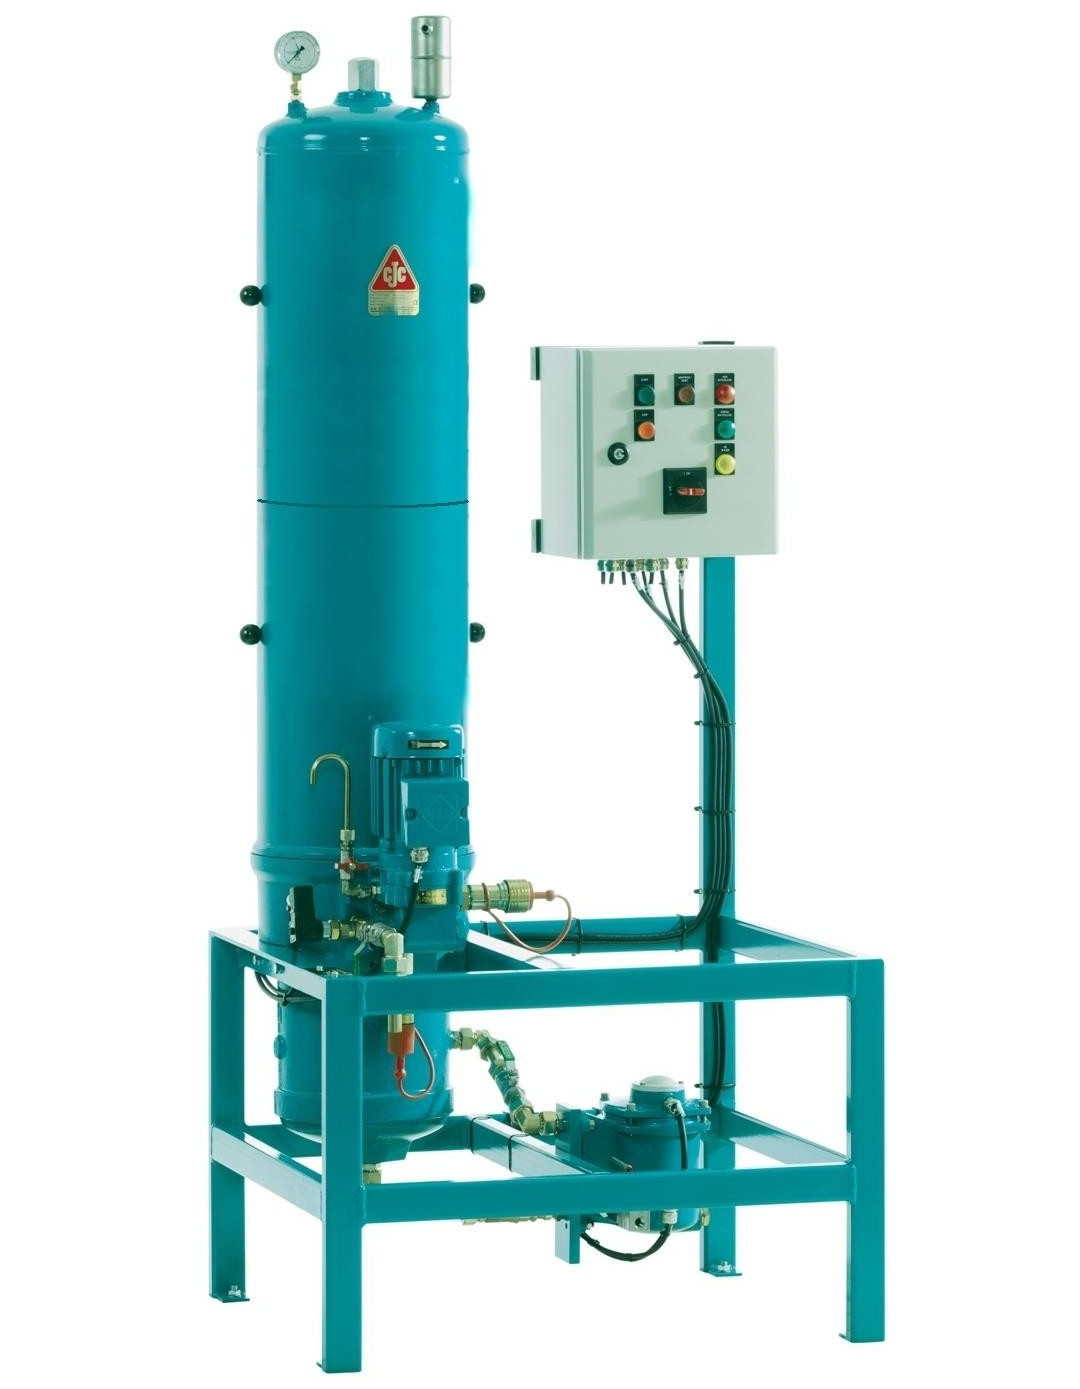 hight resolution of cjc filter separators are offline oil filtration and water separation systems with integrated circulating pumps for kidney loop type installation